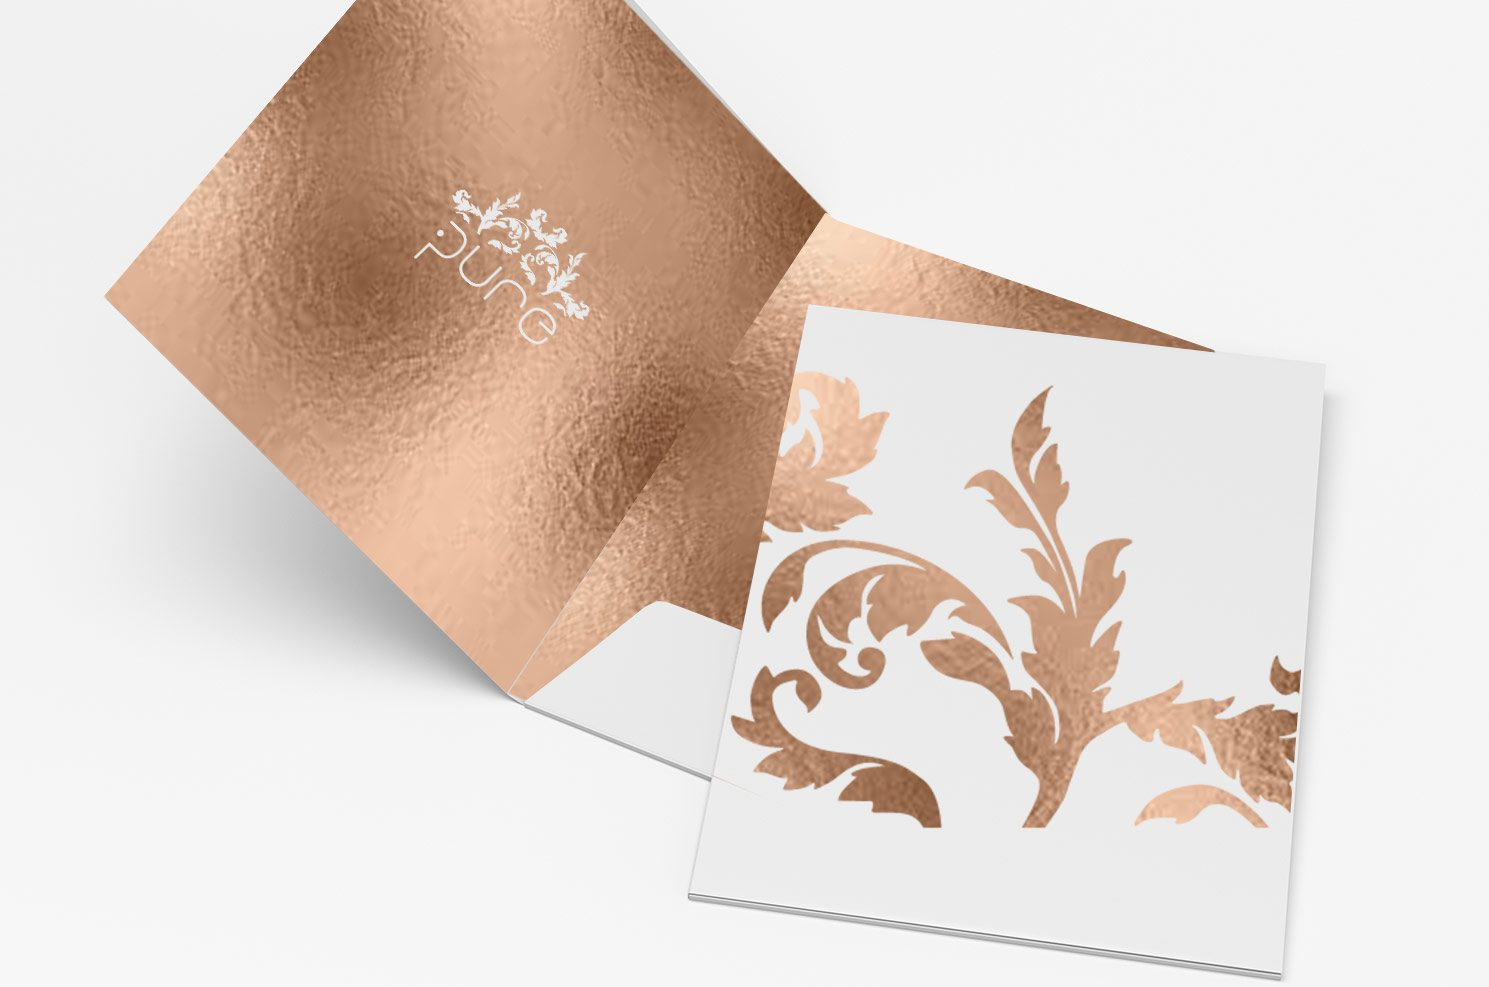 Ami-Mckay-Pure-Interior-Design-Rebrand-Social-Stationery-Card